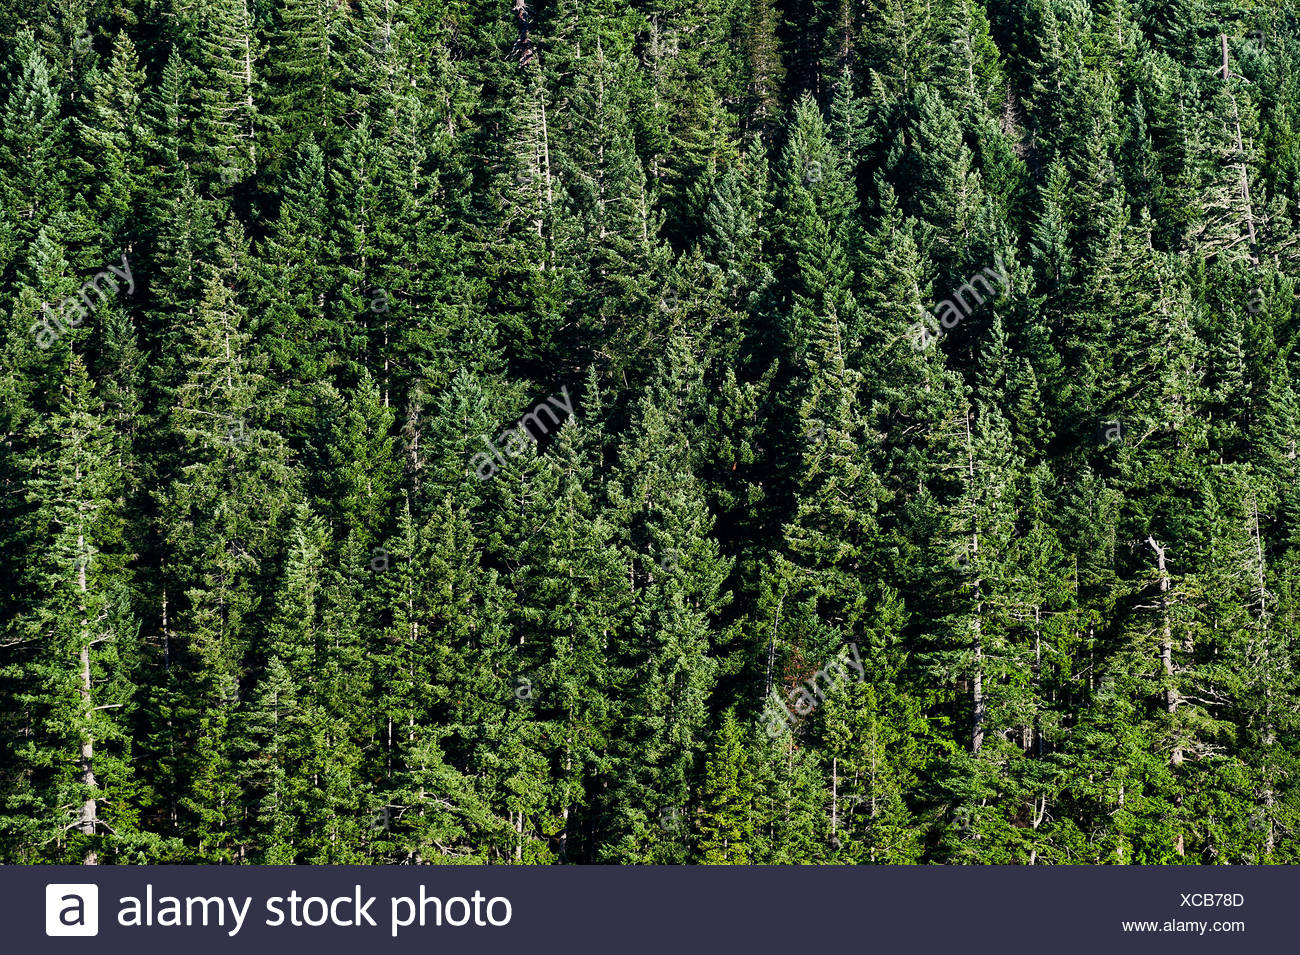 Stand of coniferous trees, British Columbia, Canada - Stock Image